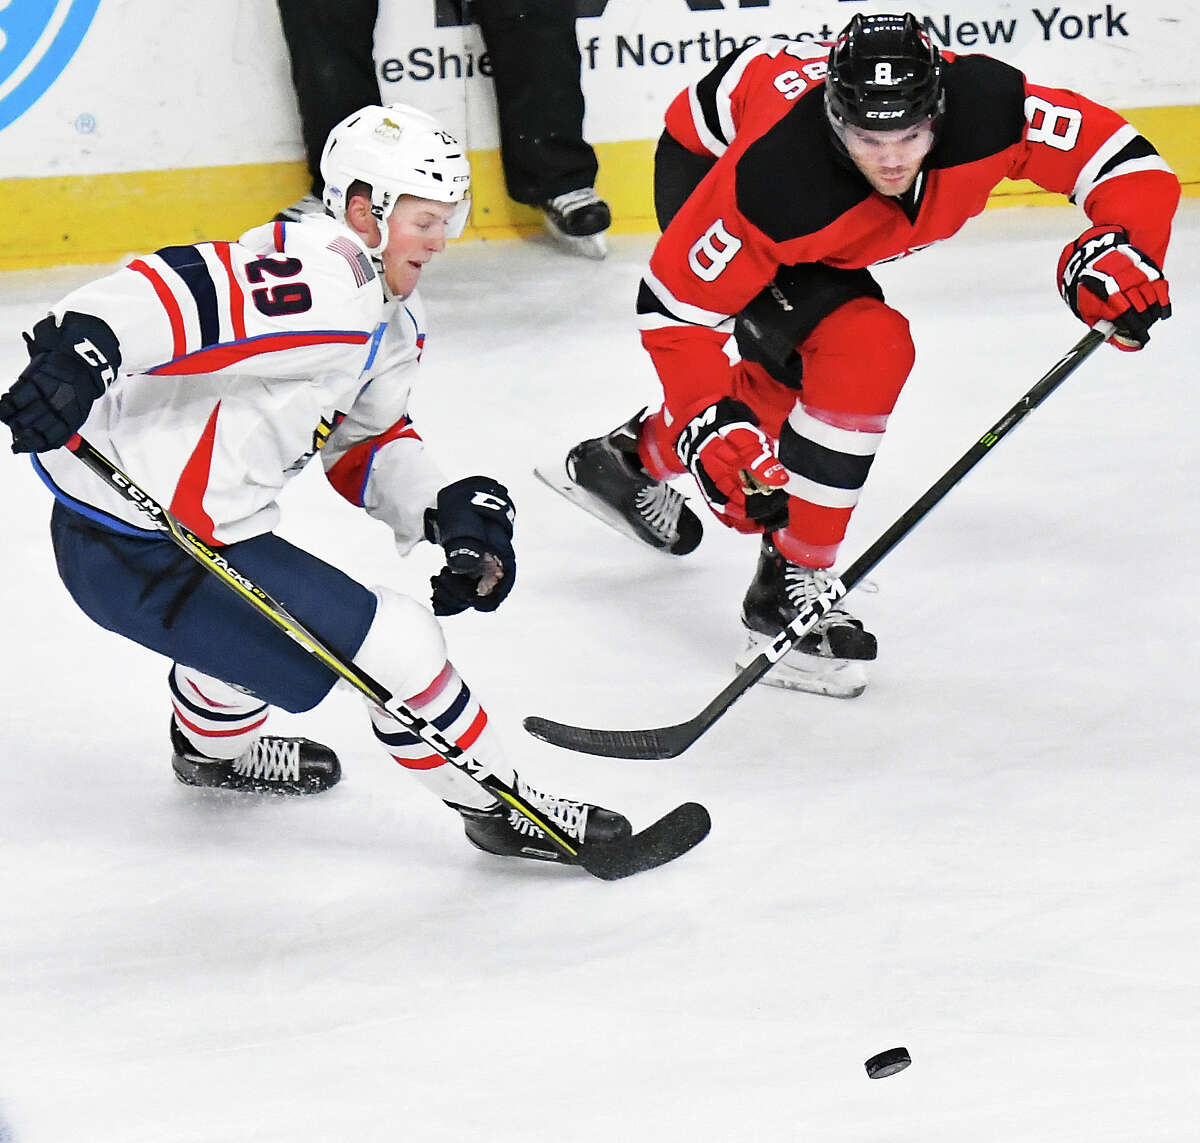 Springfield Thunderbirds' #29 Dryden Hunt, left, and Albany Devils #8 Josh Jacobs race for the puck during Friday's game at the Times Union Center March 17, 2017 in Albany, NY. (John Carl D'Annibale / Times Union)